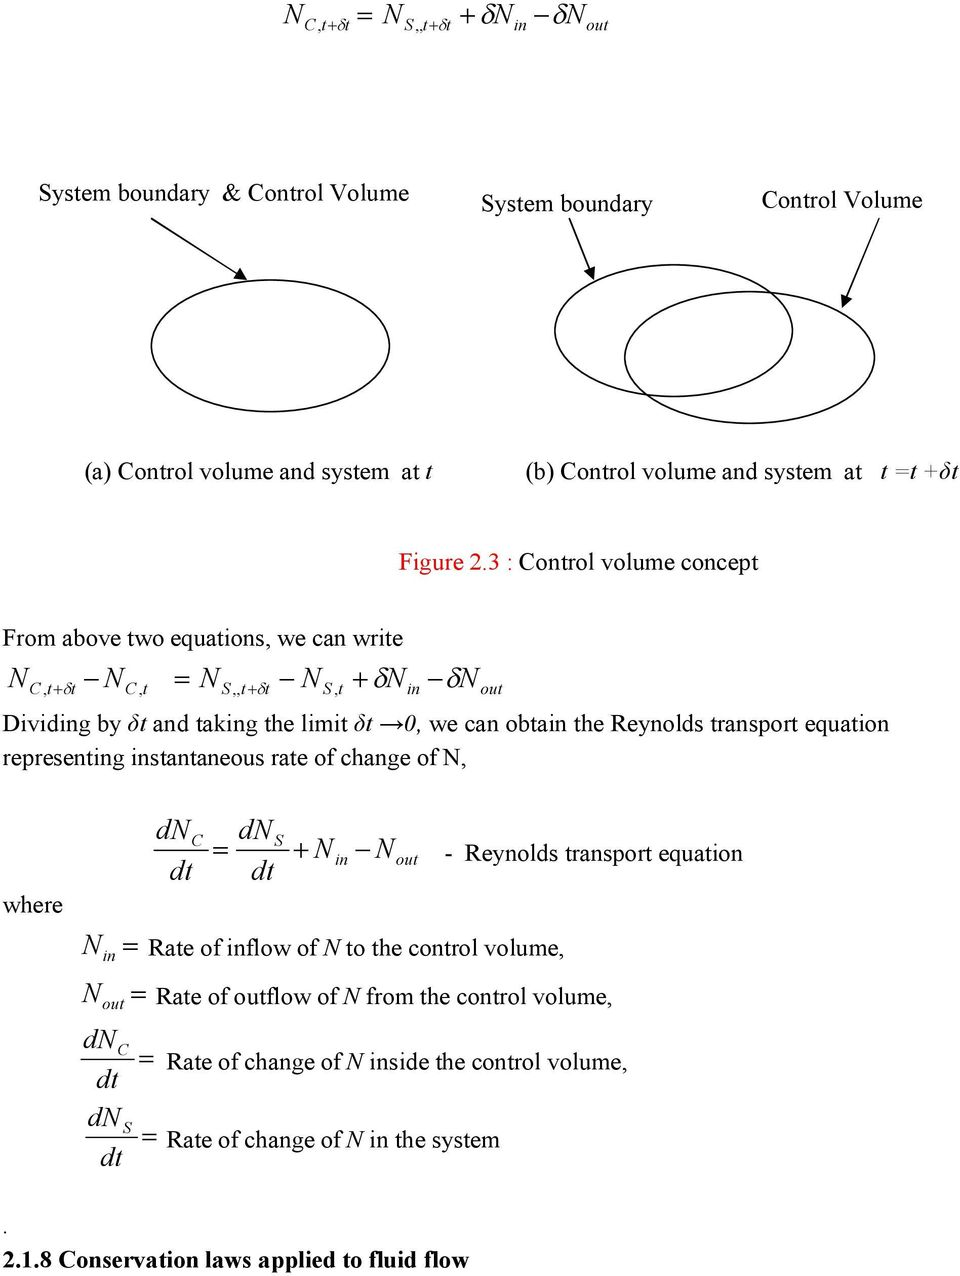 transport equation representing instantaneous rate of change of N, out where dn dt dn dt C S N in Nout - Reynolds transport equation N Rate of inflow of N to the control volume, in N